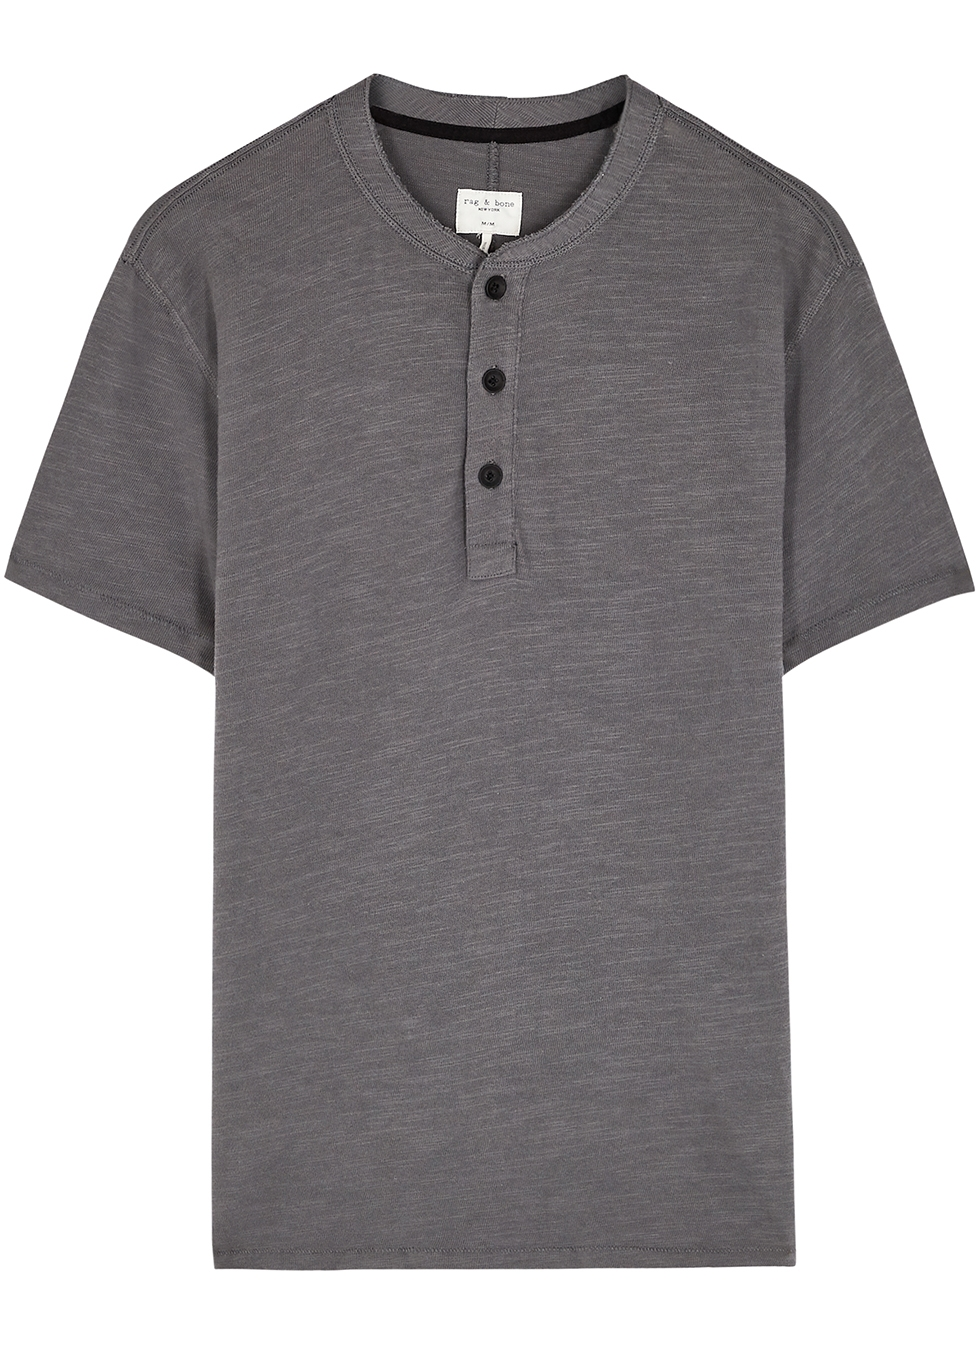 Henley grey slubbed cotton T-shirt